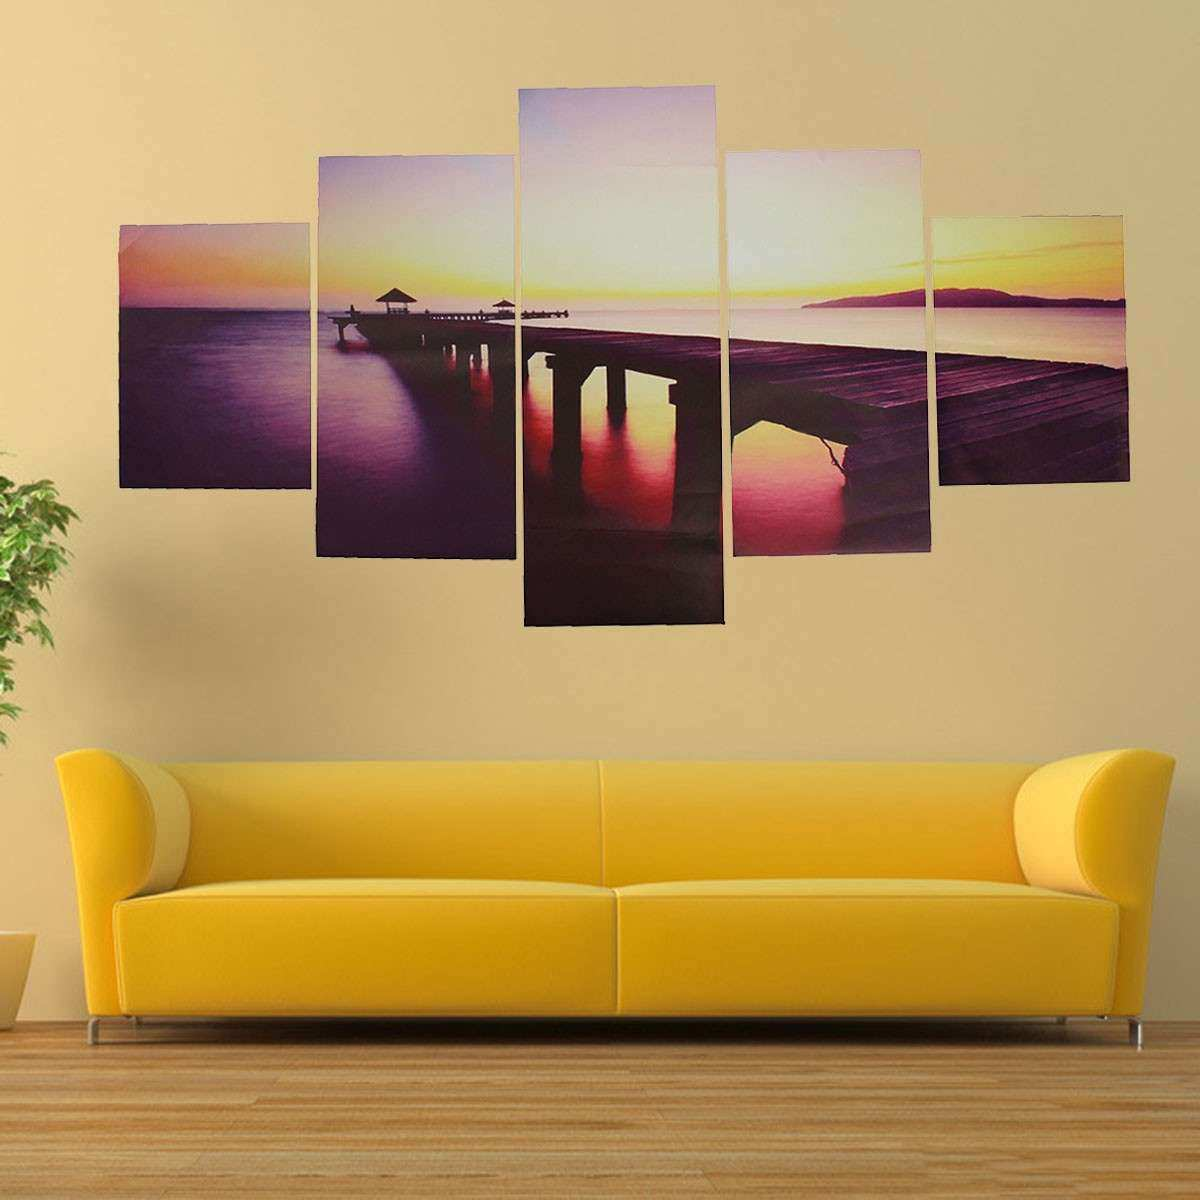 5Pcs Canvas Painting Sunset Seascape Print Seawater Modern